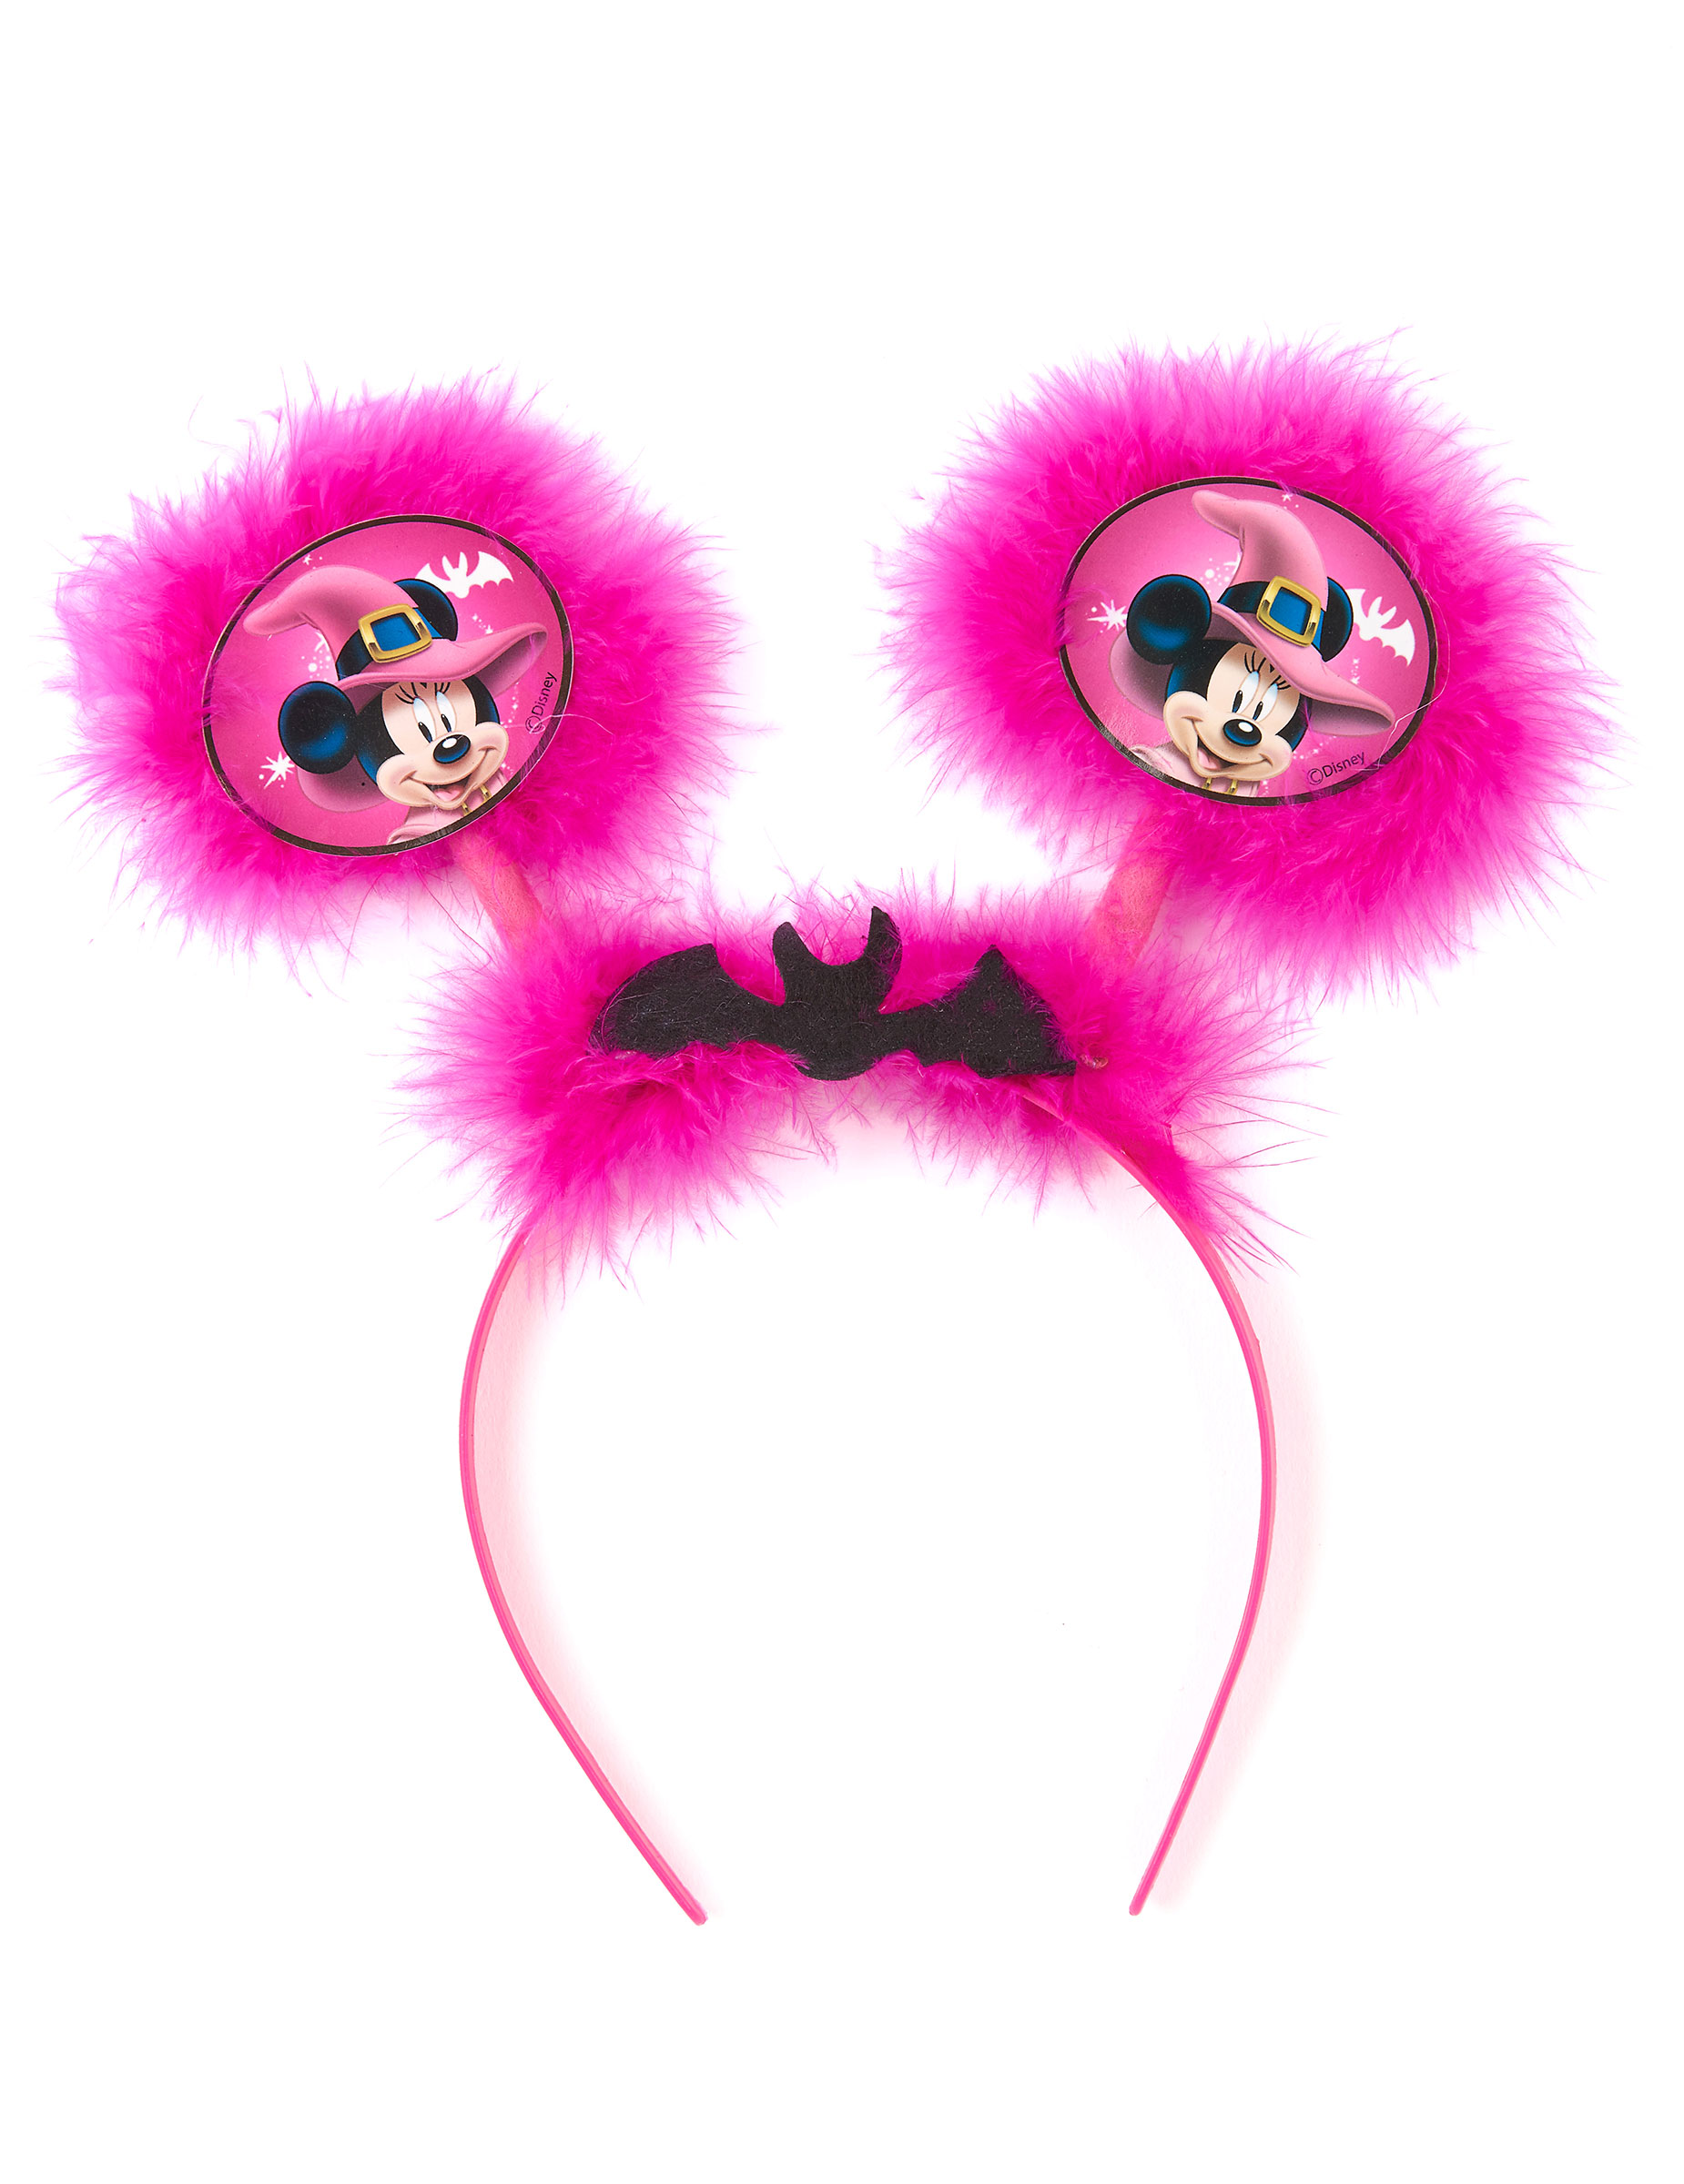 Decoracion Minnie Fucsia ~ Diadema Minnie? fucsia  Accesorios, y disfraces originales baratos